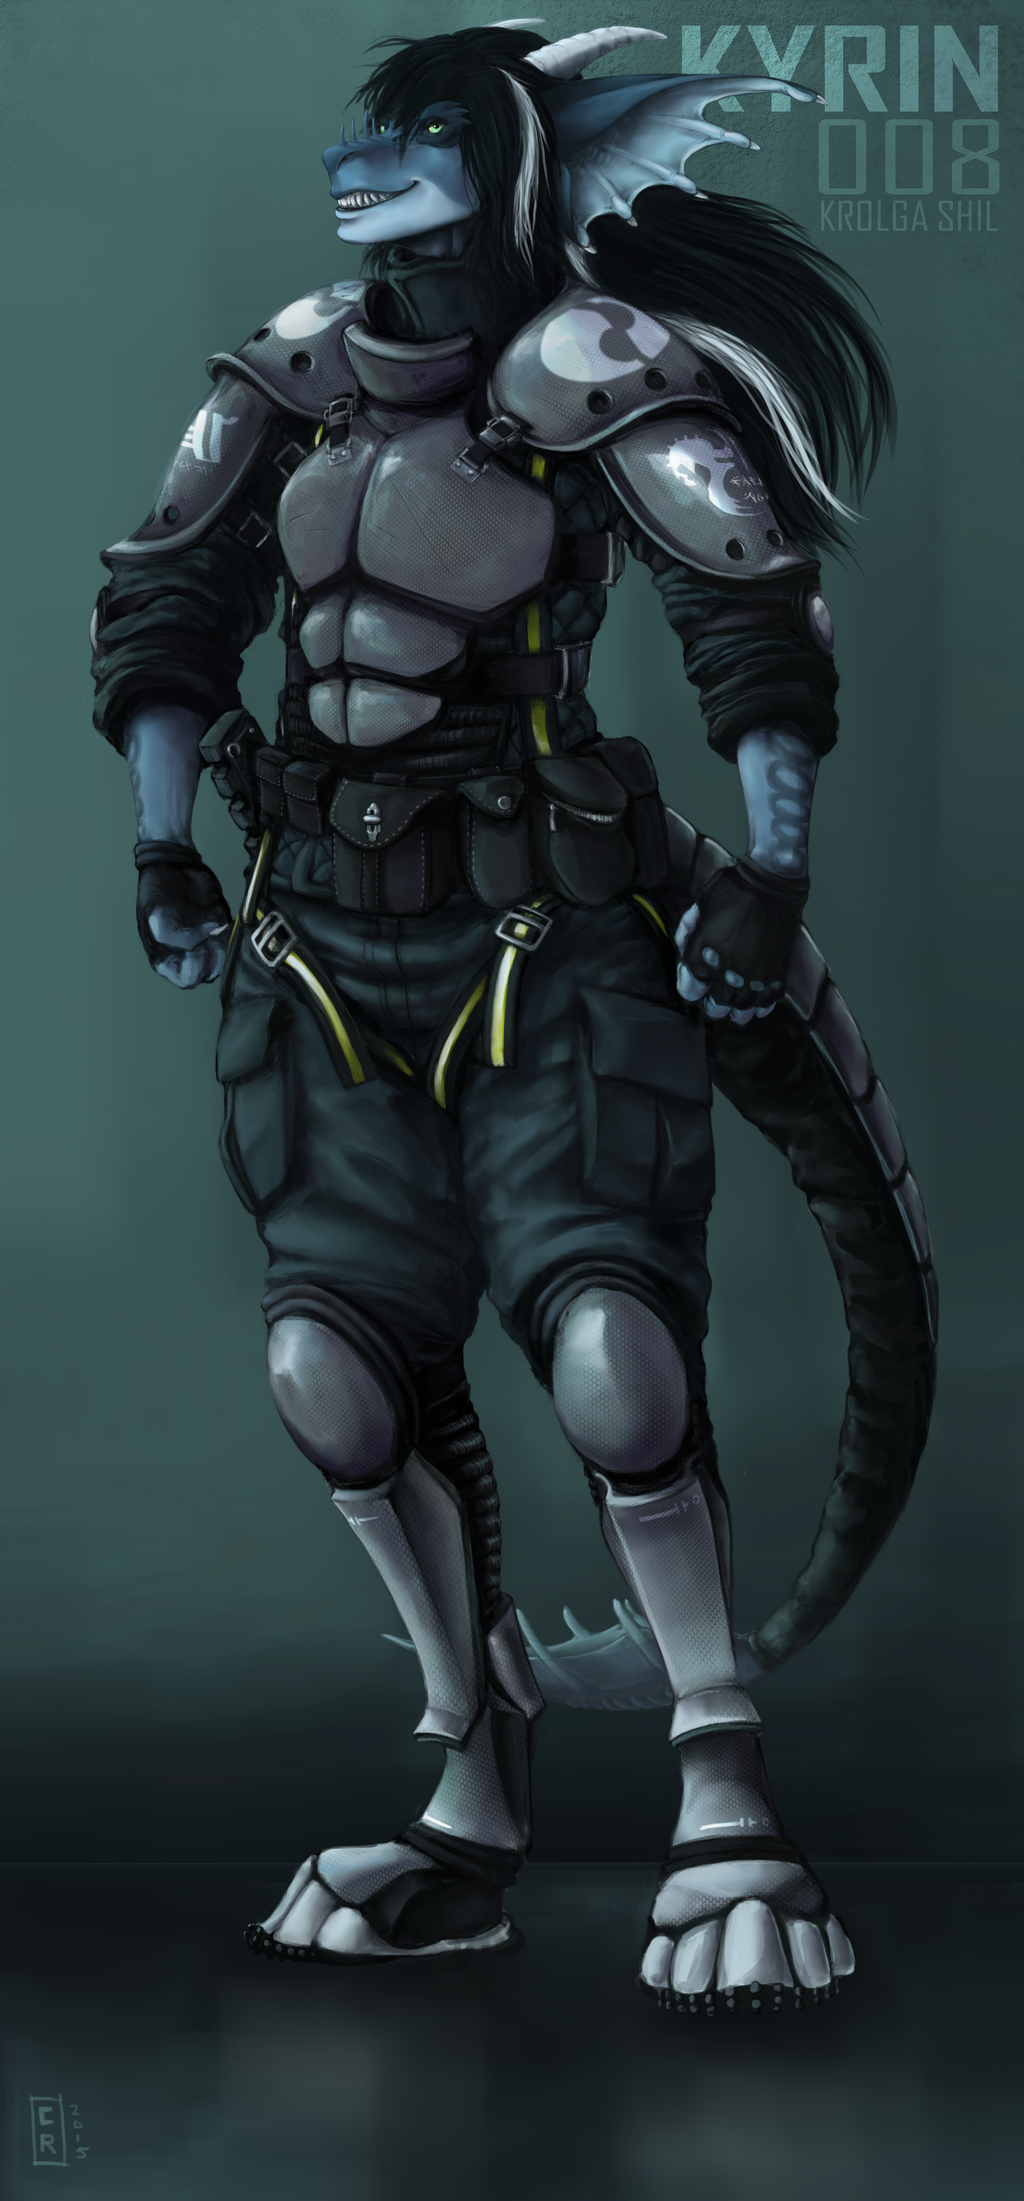 Most recent image: Commission: Kyrin